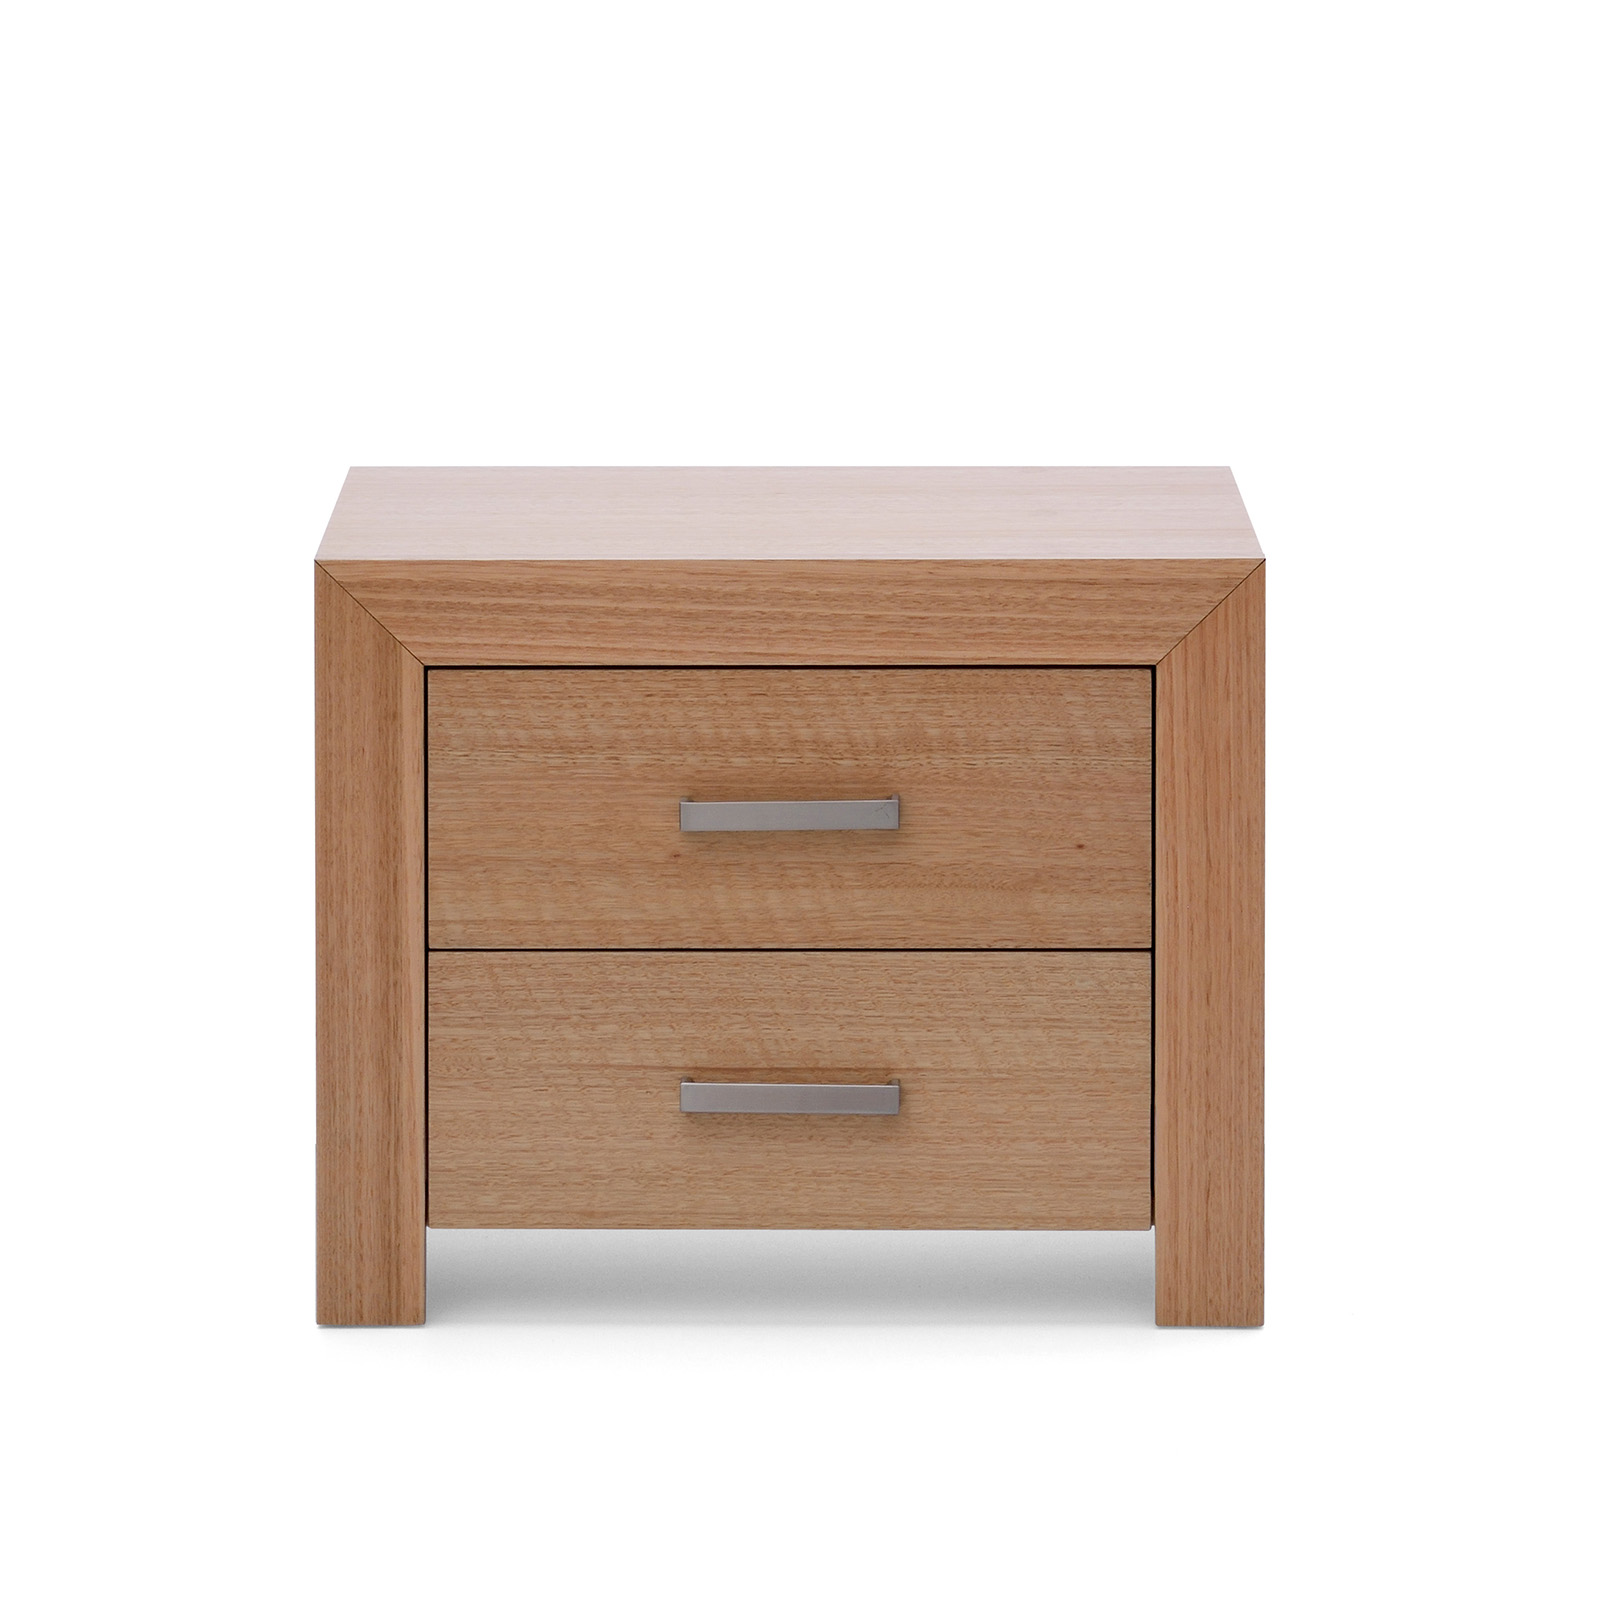 Madison Tasmanian OAK Veneer Bedside Table 2 Storage  : 10 28011 from www.ebay.com.au size 1600 x 1600 jpeg 254kB